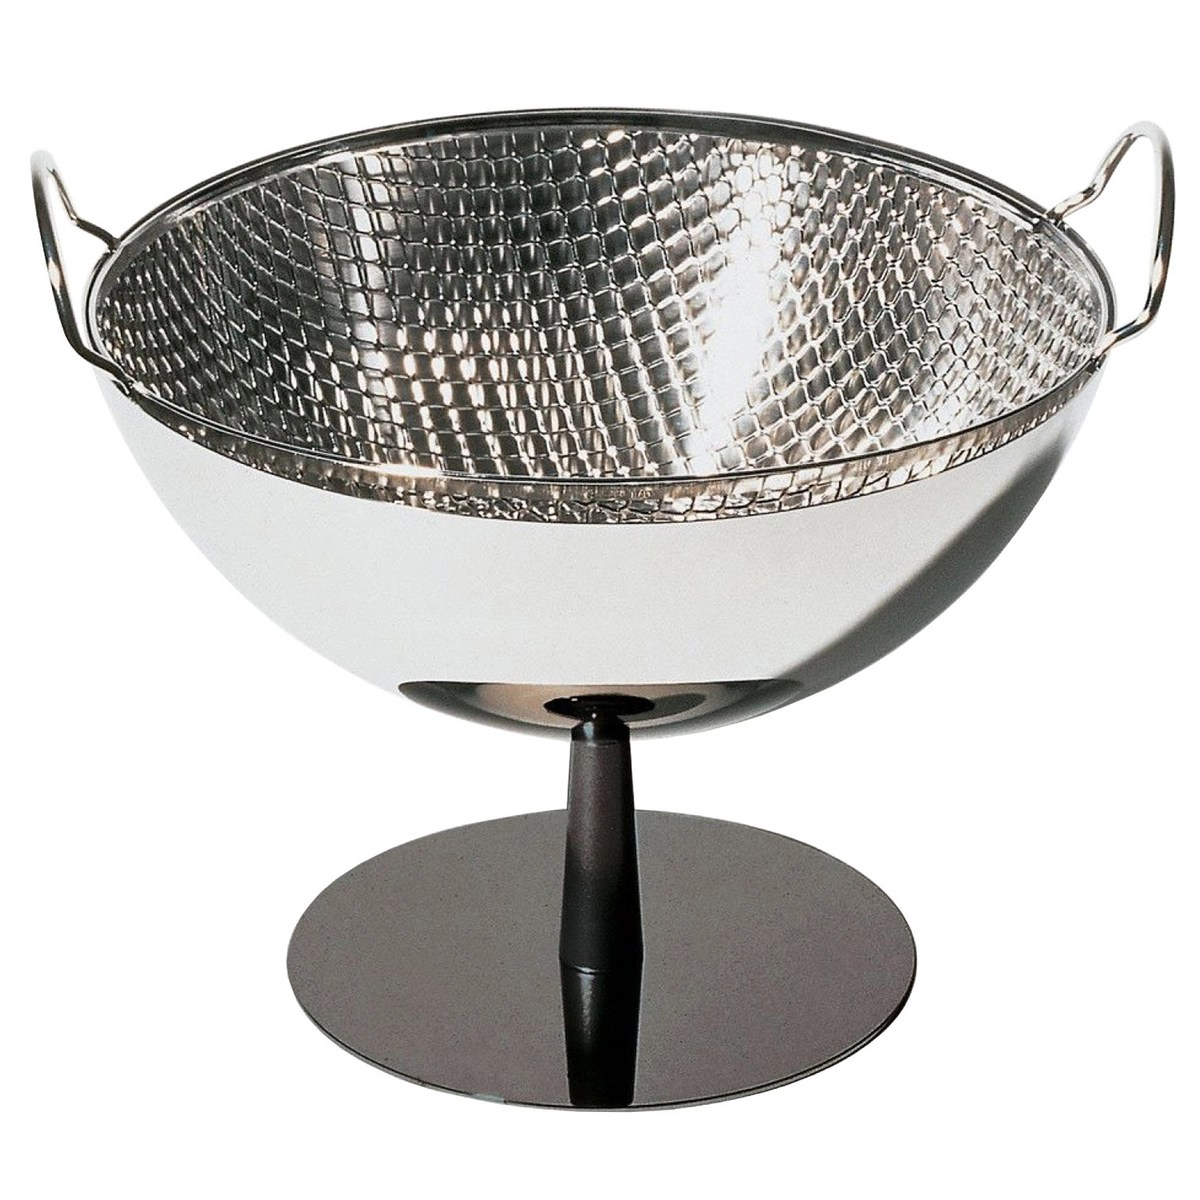 Bowl For Fruit Ac04 Fruit Bowl Colander Steel